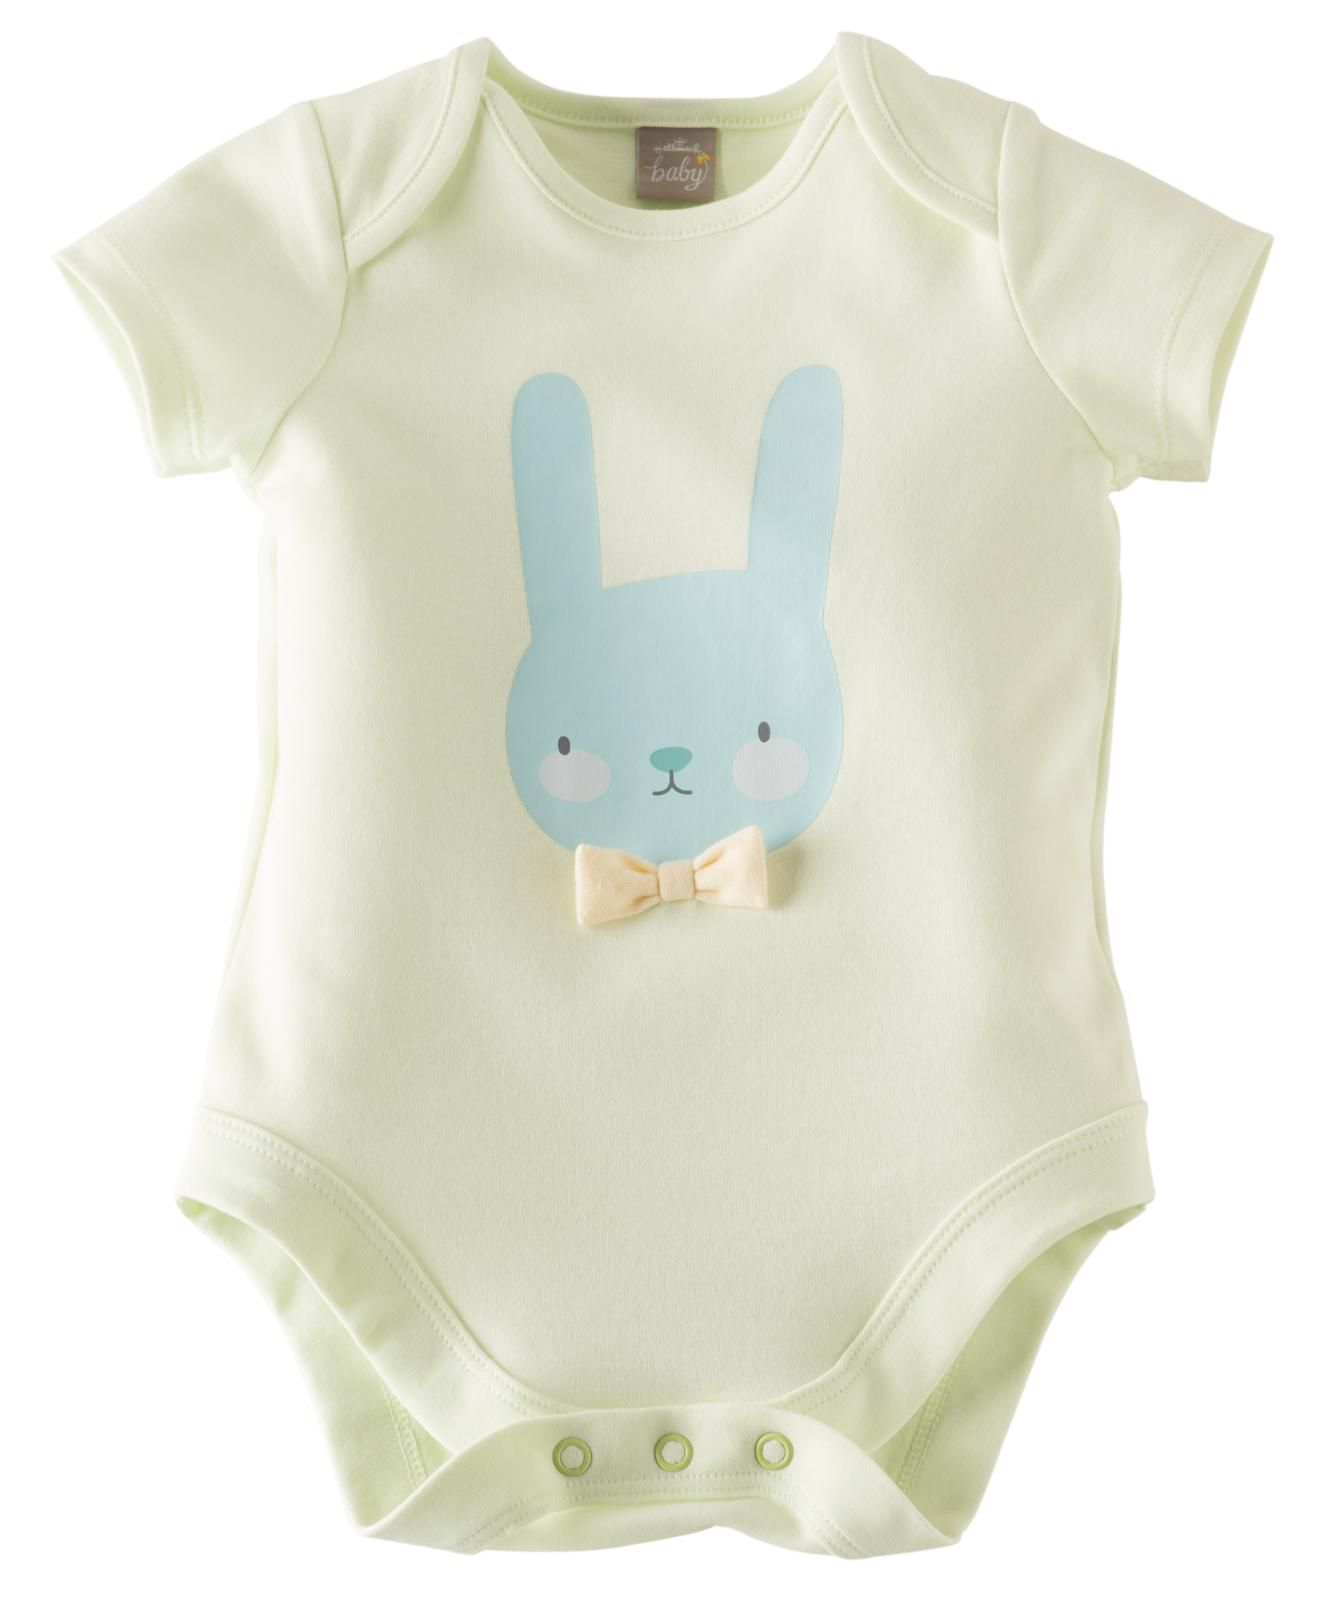 Supremely soft little baby body suit perfect for sweet summer